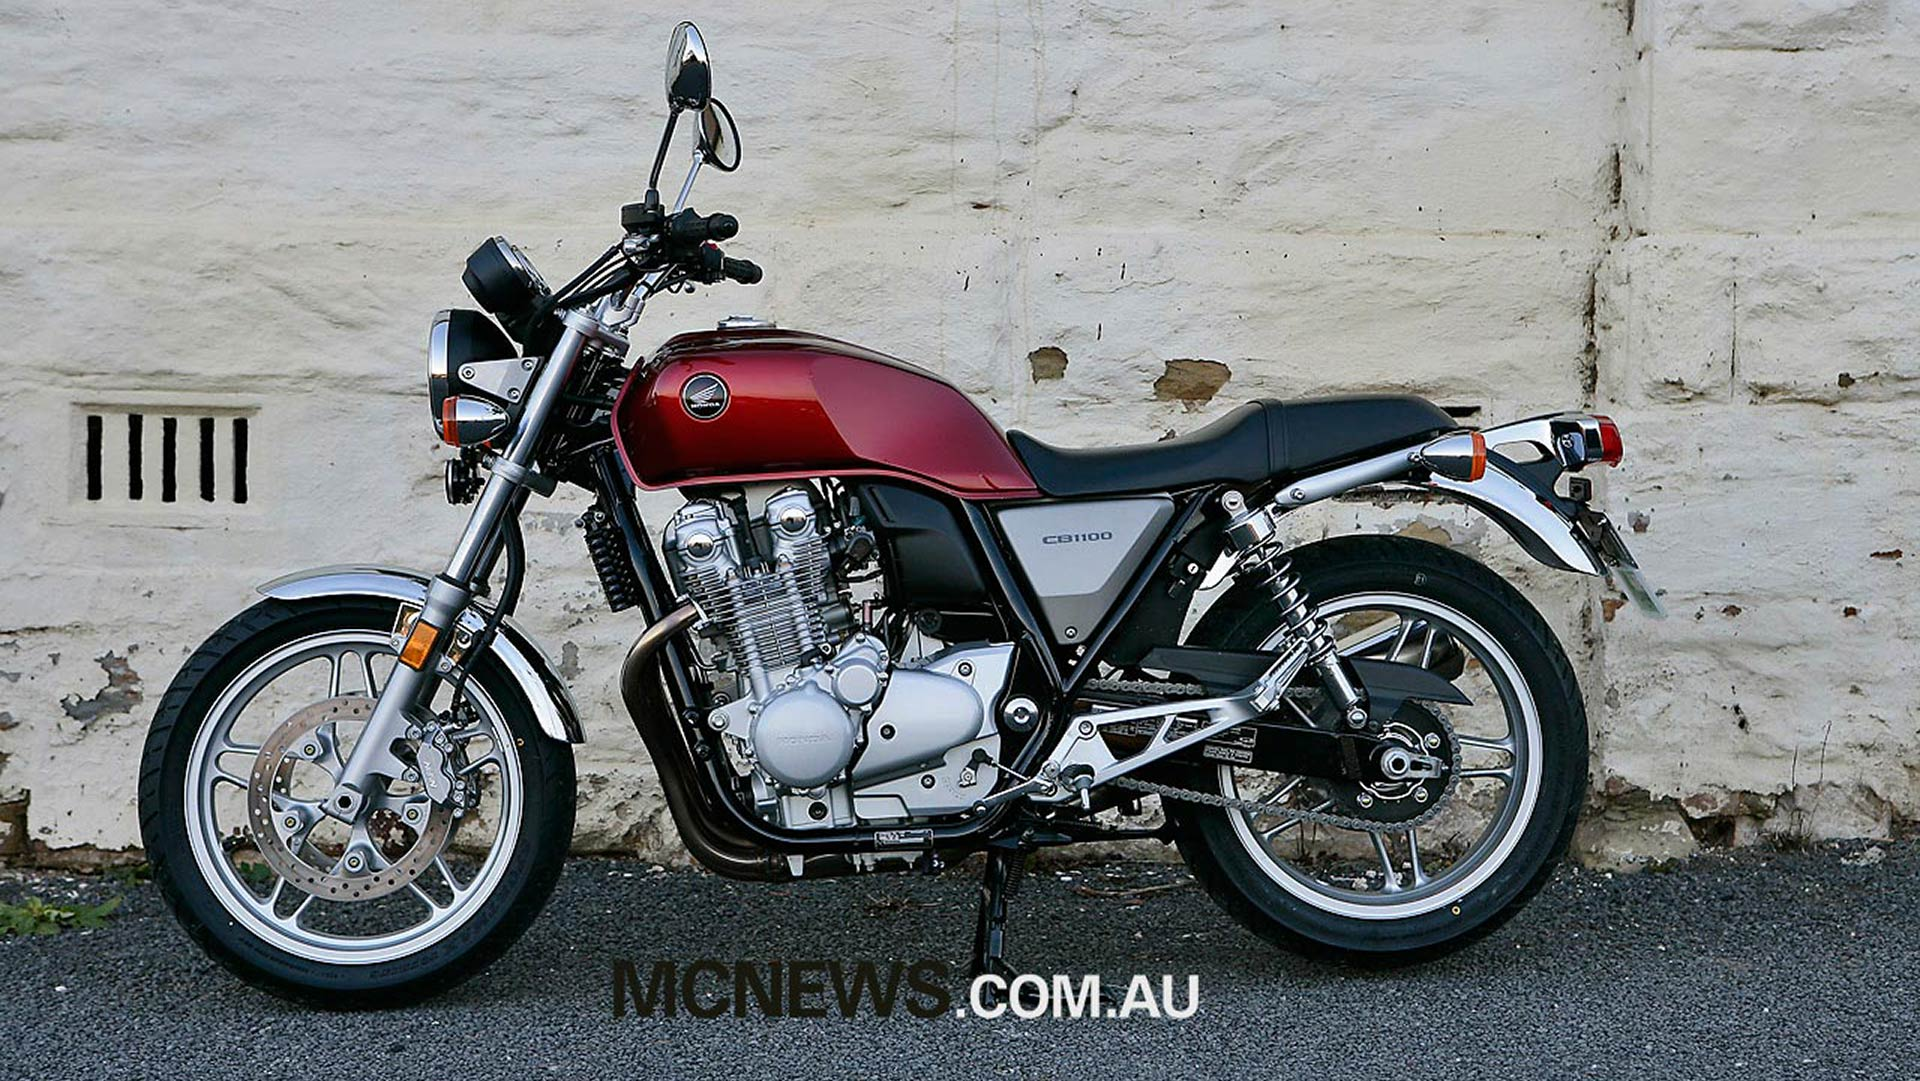 2010 Honda Cb1100 Review Motorcycle News Sport And Reviews